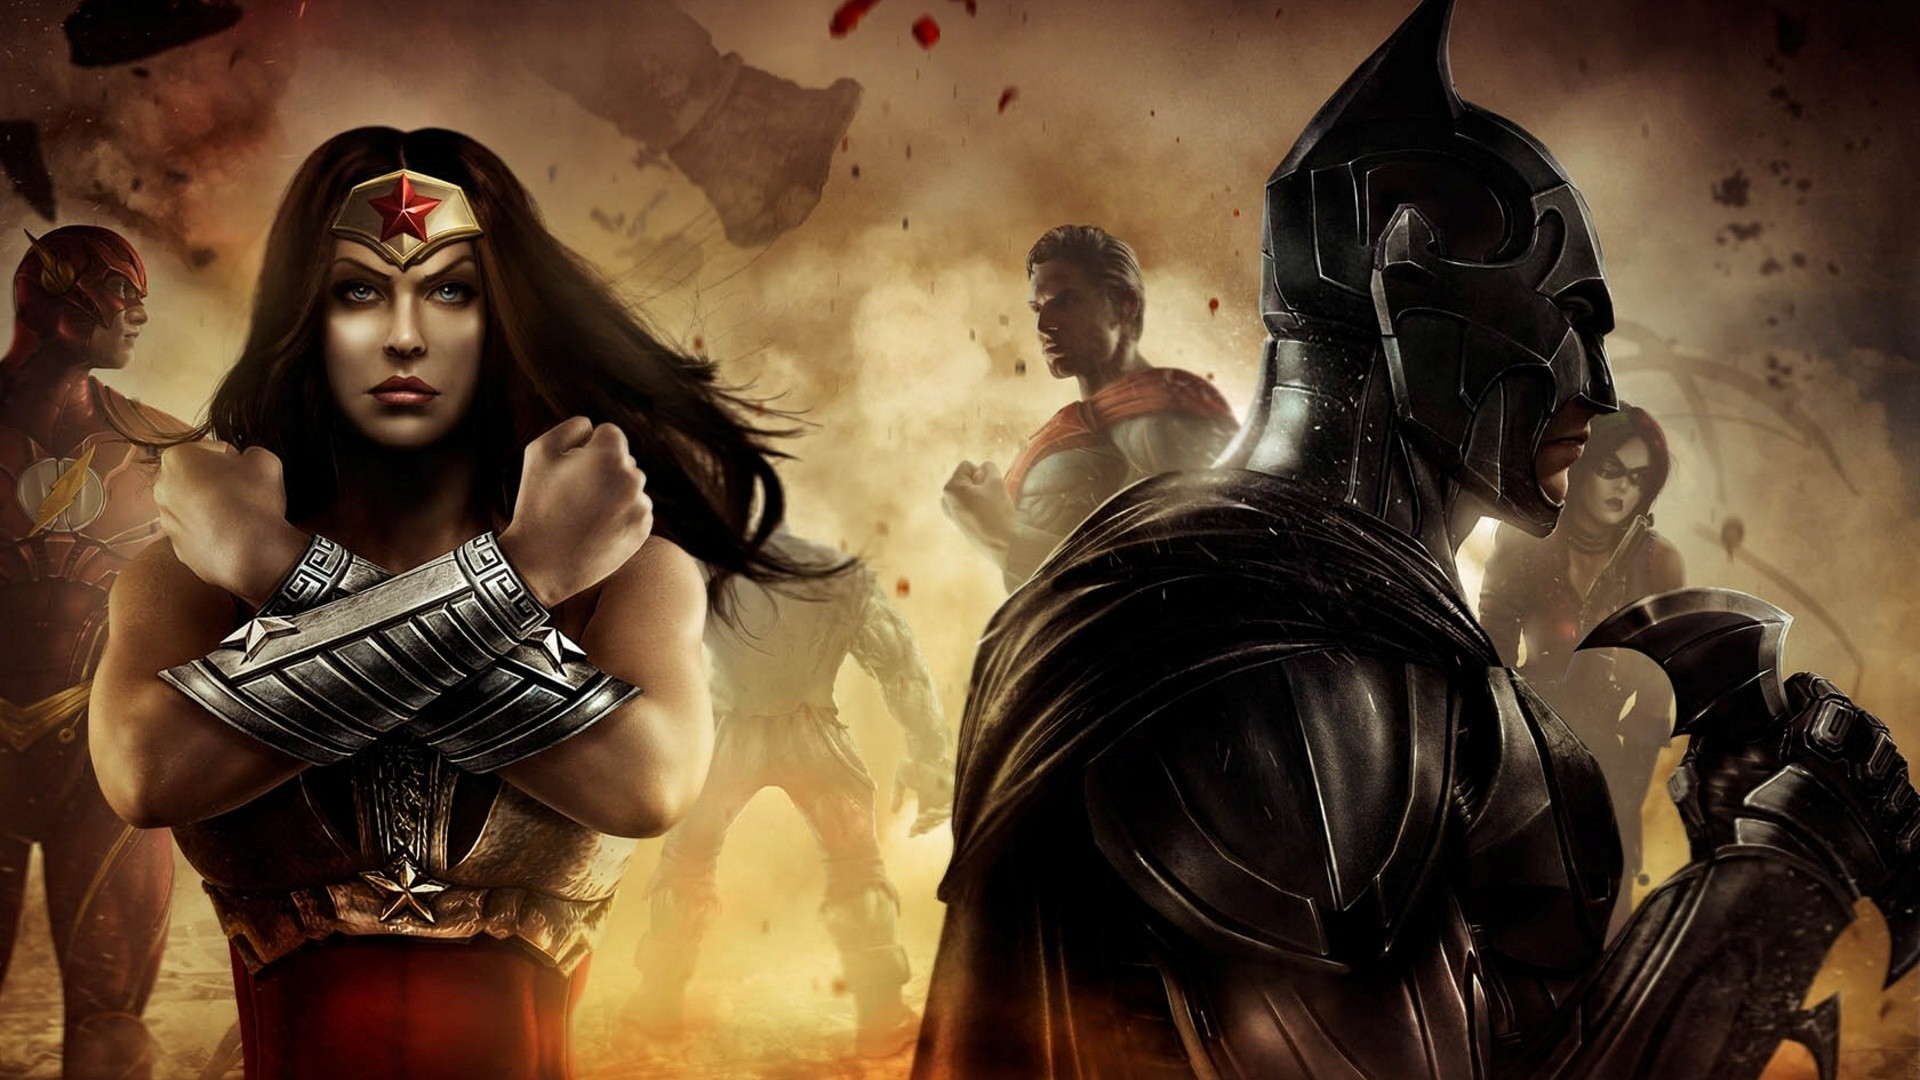 Injustice Gods Among Us Hd Wallpaper Background Image 1920x1080 Id 526262 Wallpaper Abyss